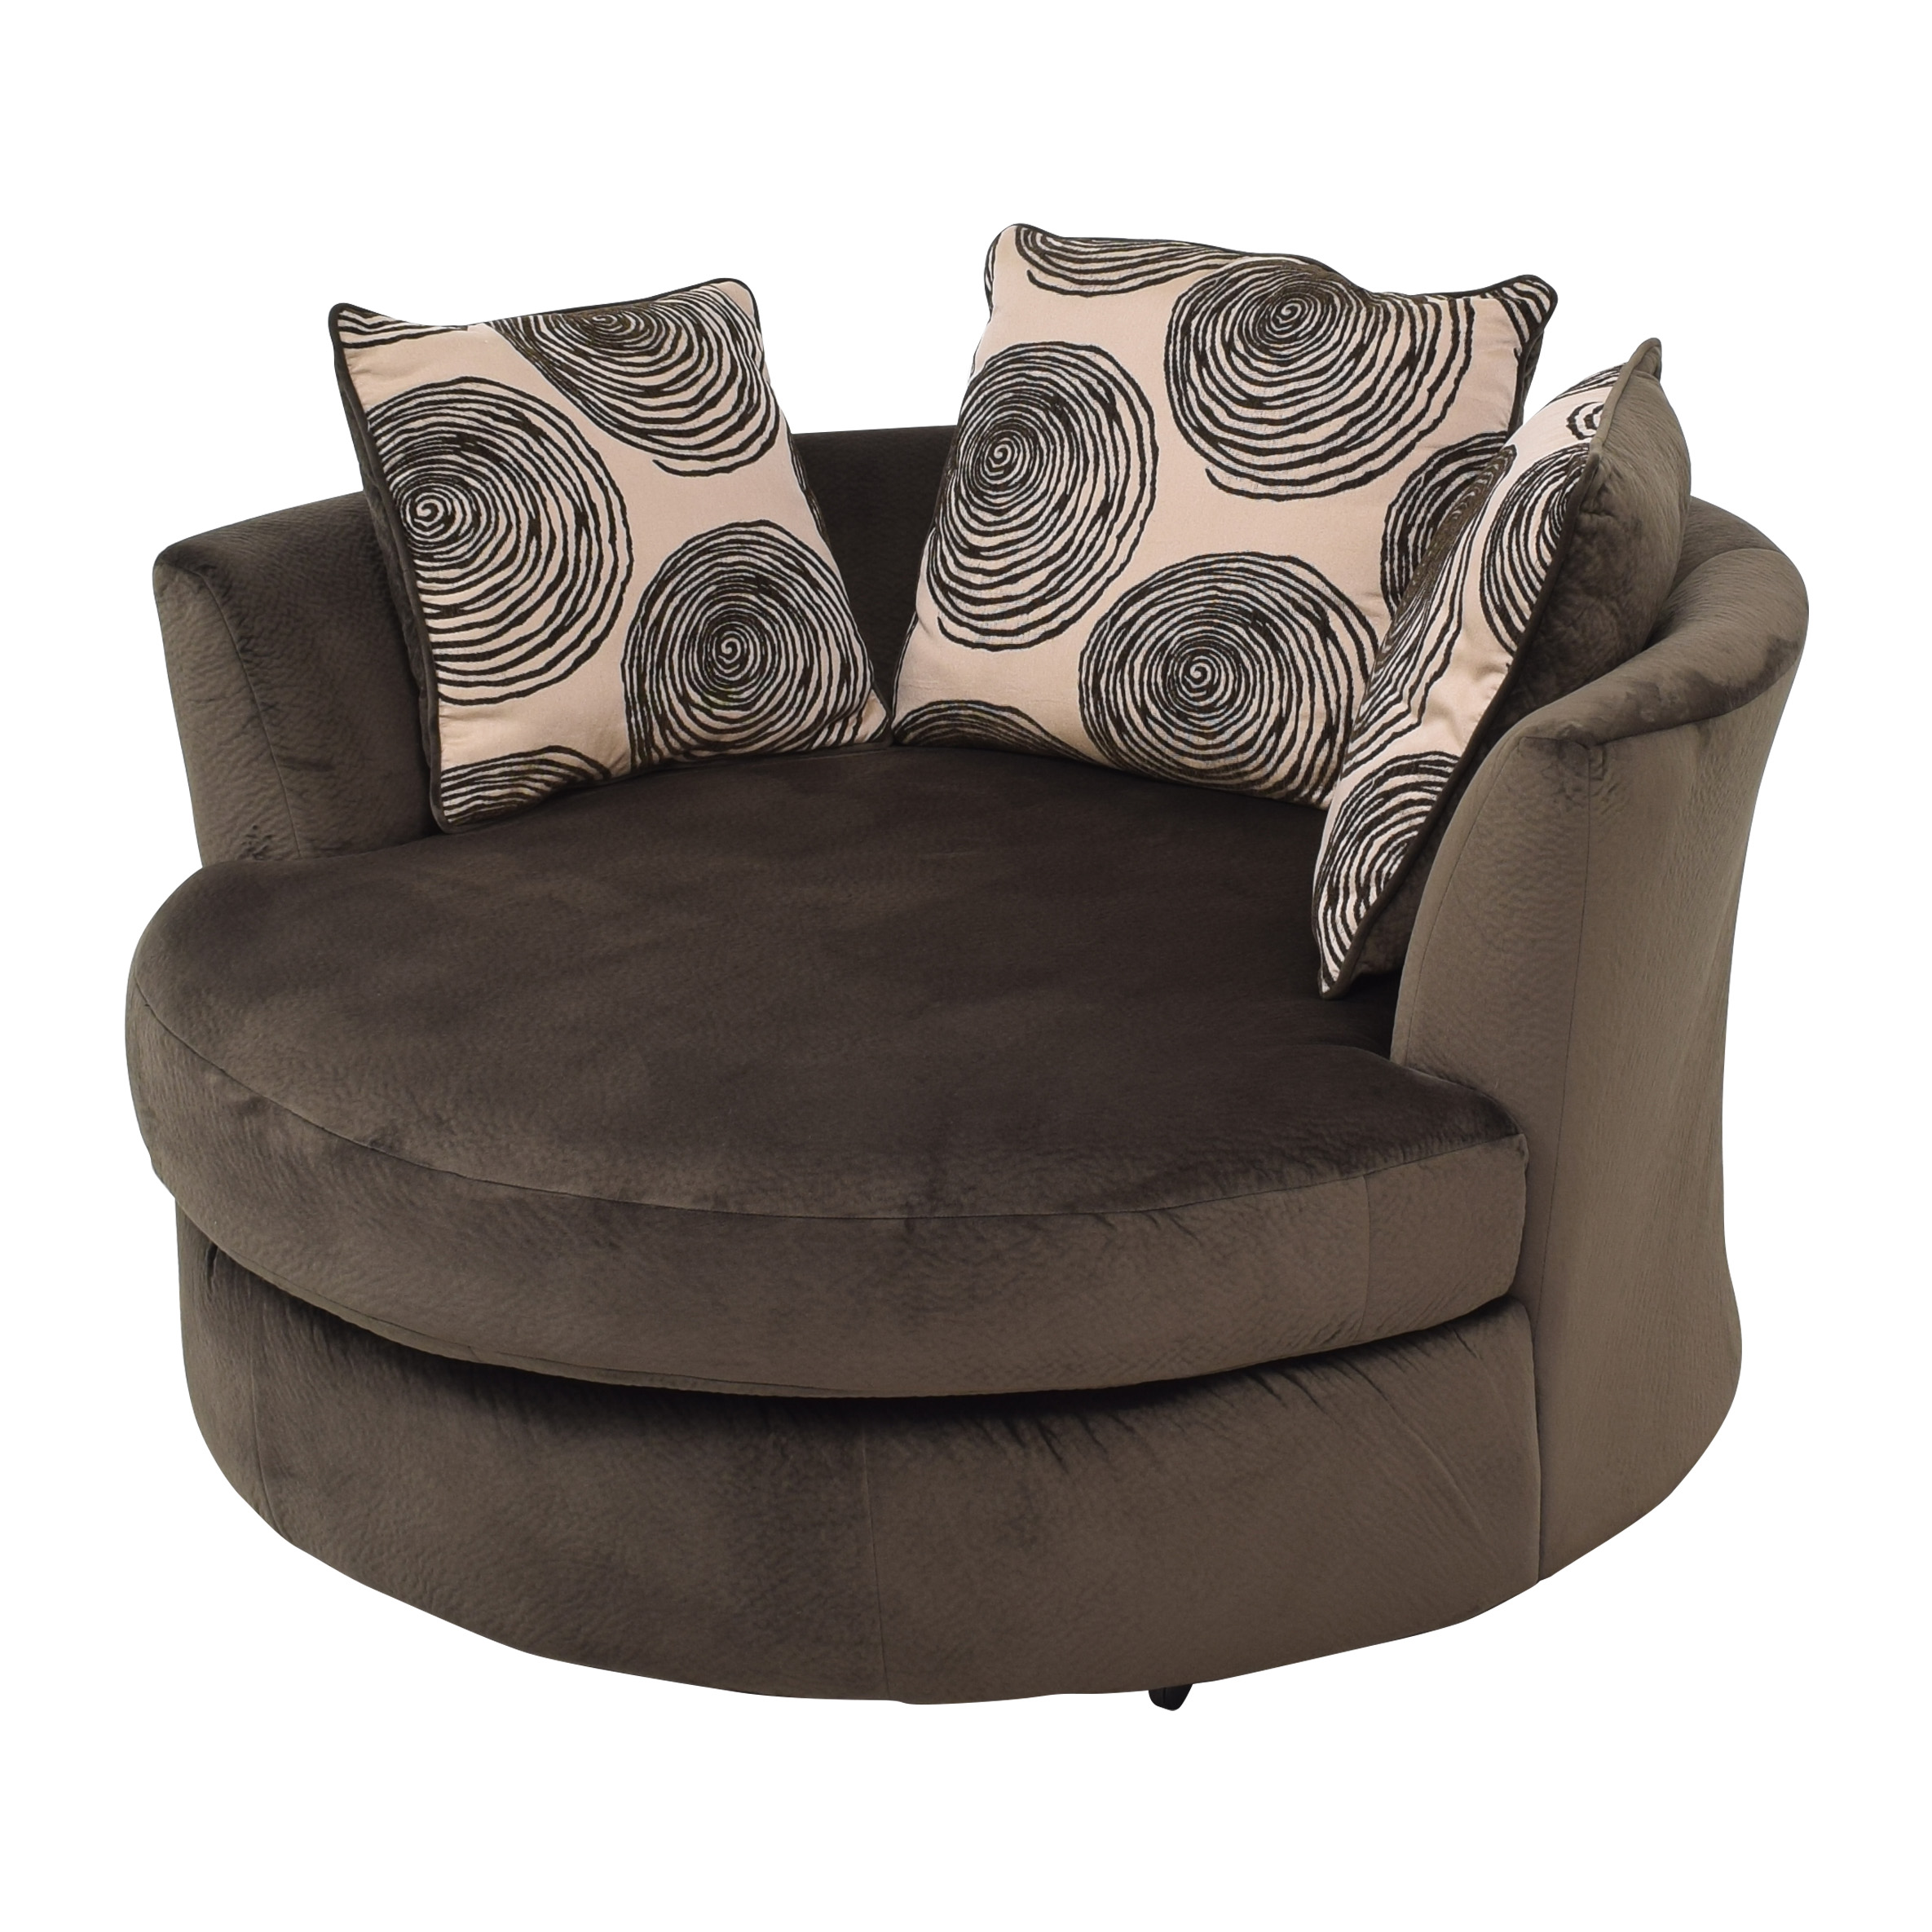 Albany Industries Albany Industries Groovy Swivel Chair discount